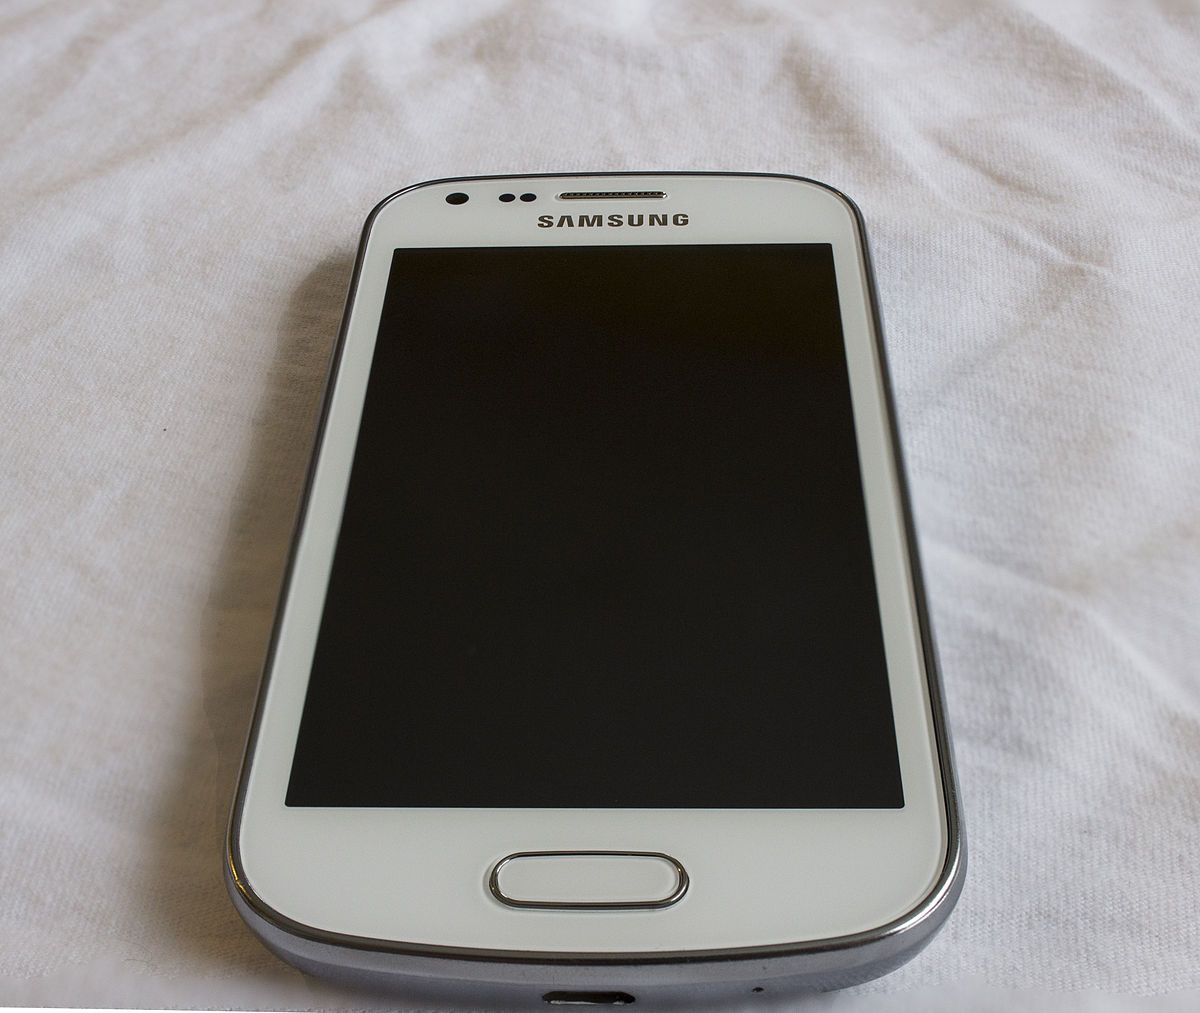 Samsung Galaxy S Rings Before Going To Voicemail O